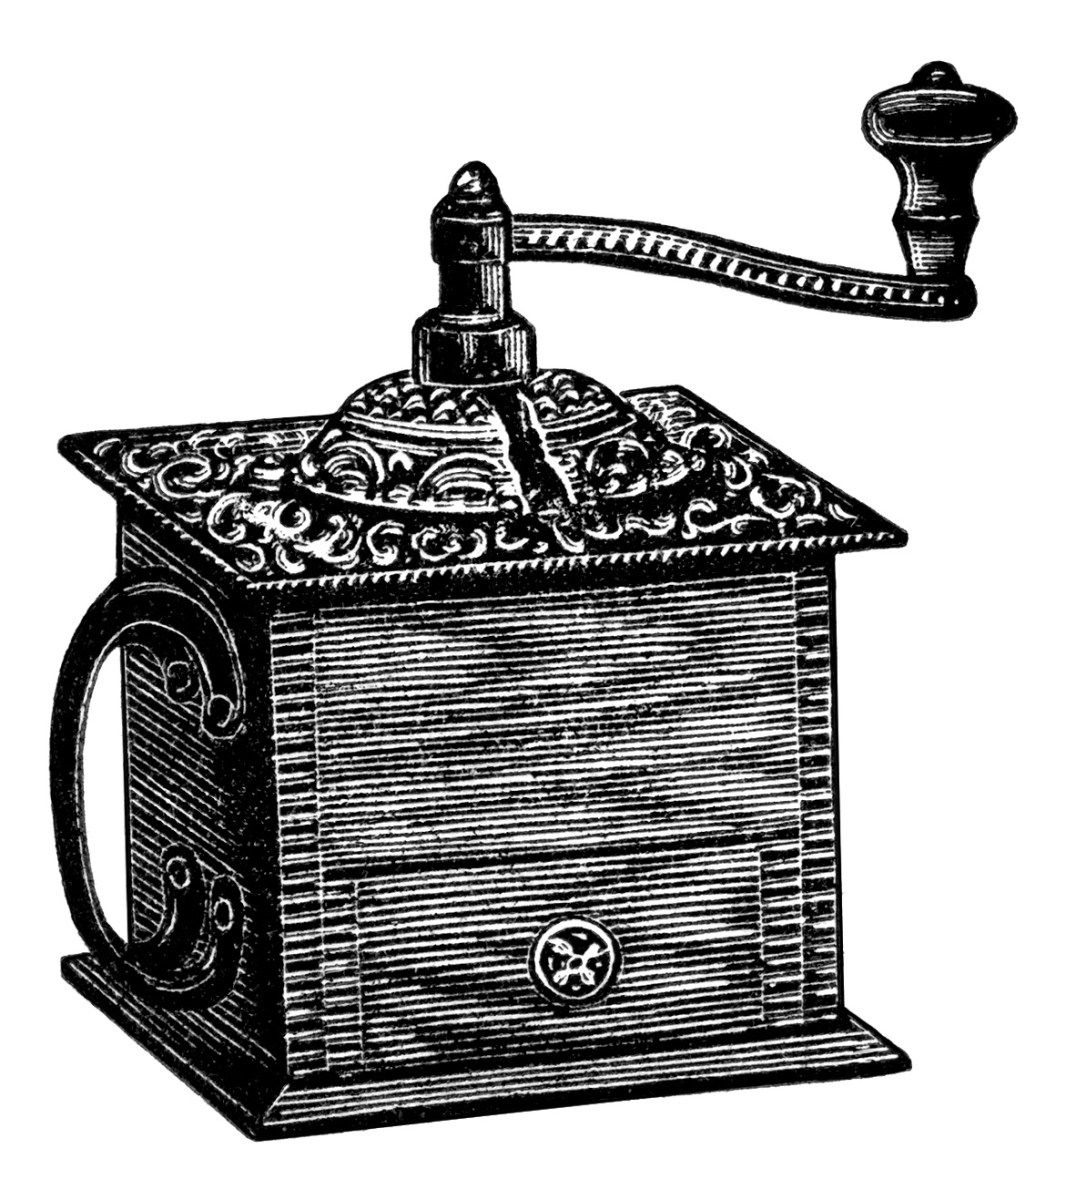 This vintage illustration of a coffee grinder is from the 1897-8 H. O'neill & Co. catalogue. The grinder had a wood frame and cost 50 cents. Click on image to enlarge.